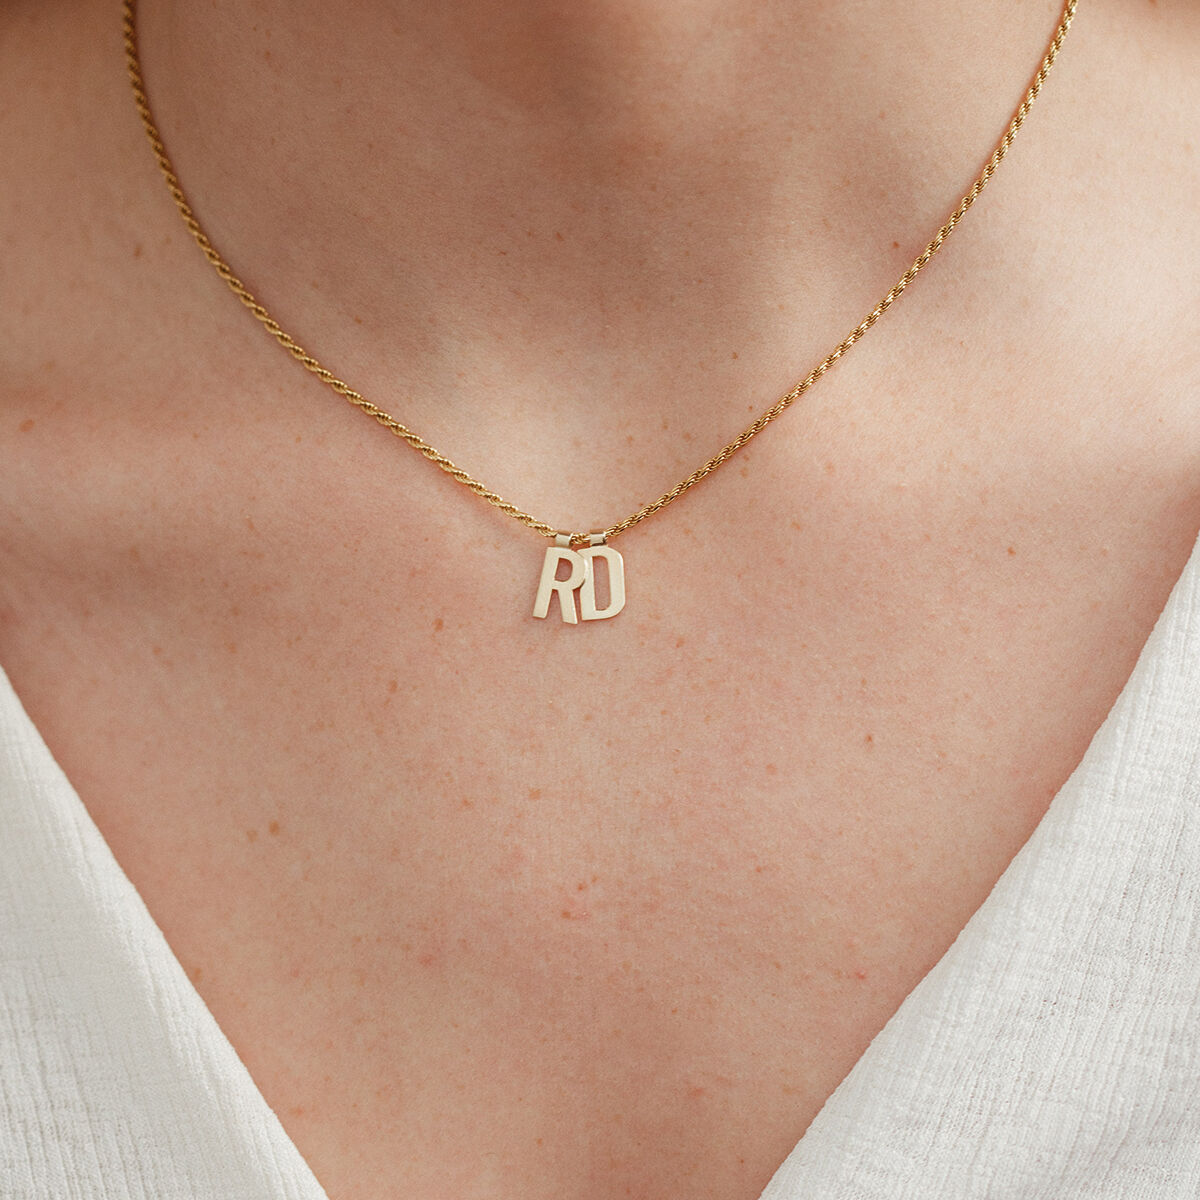 Ruby Rope Letter Necklace gold RD